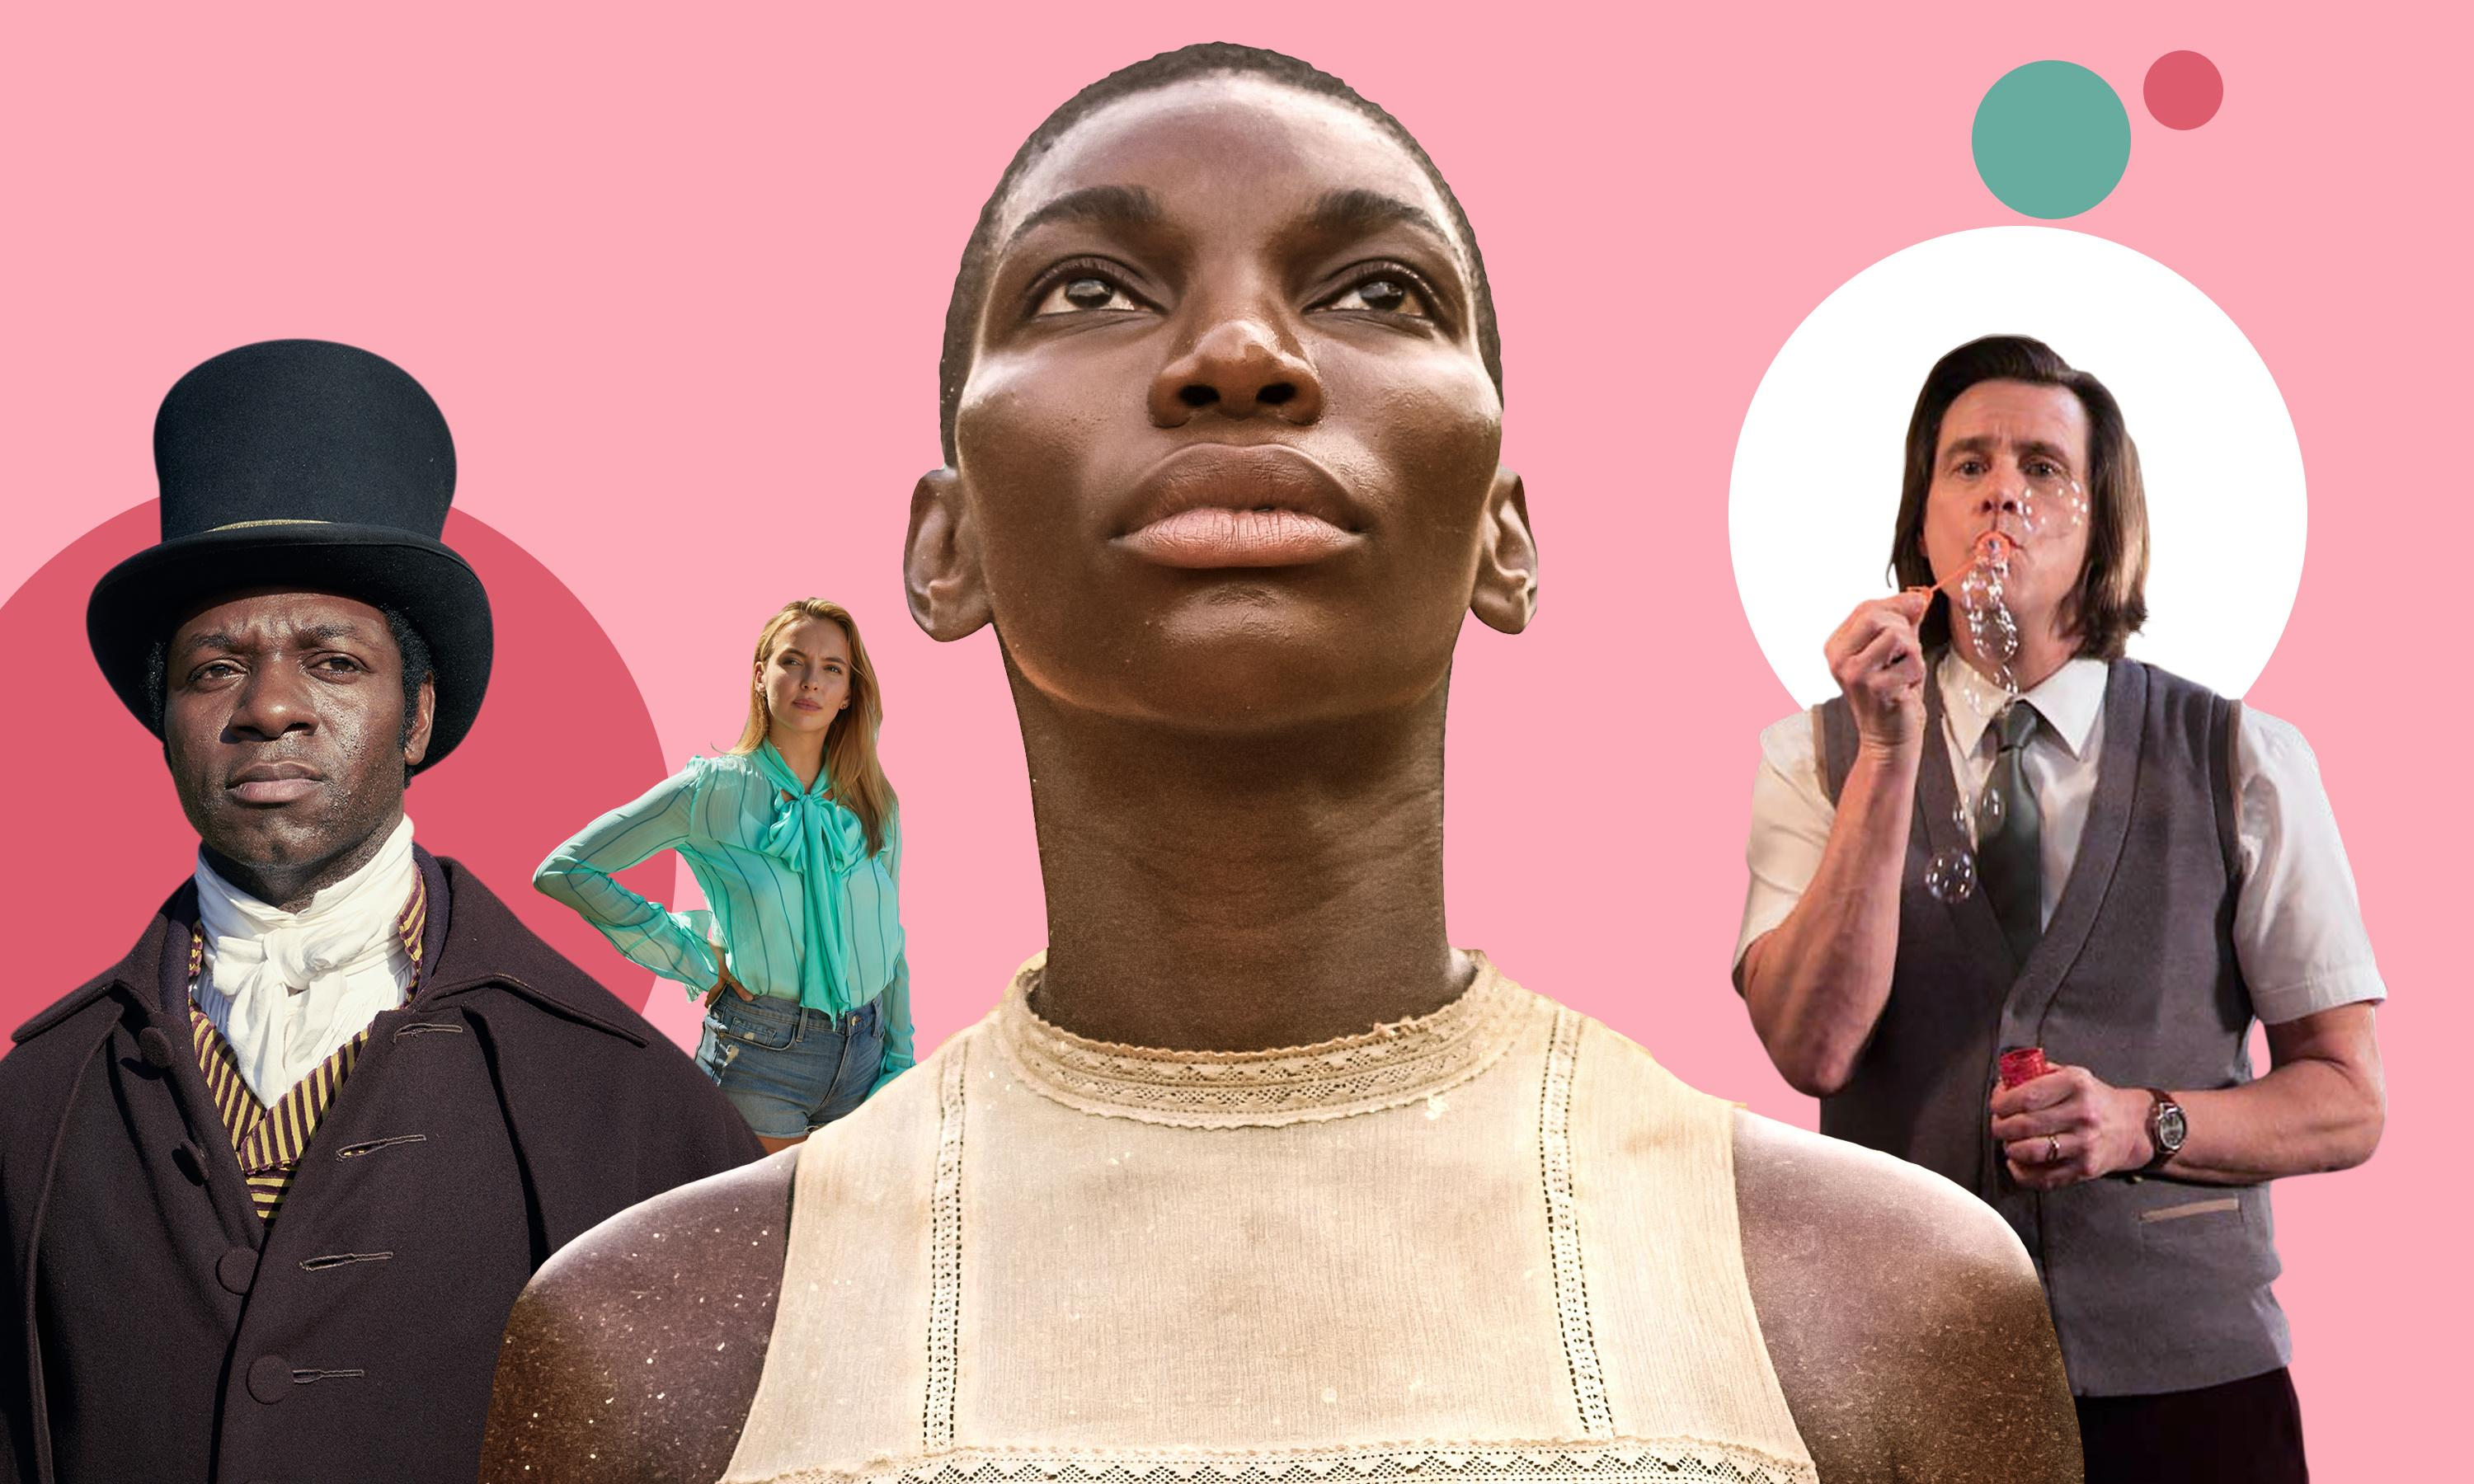 Sex, spies and video dates: the must-see TV shows of autumn 2018